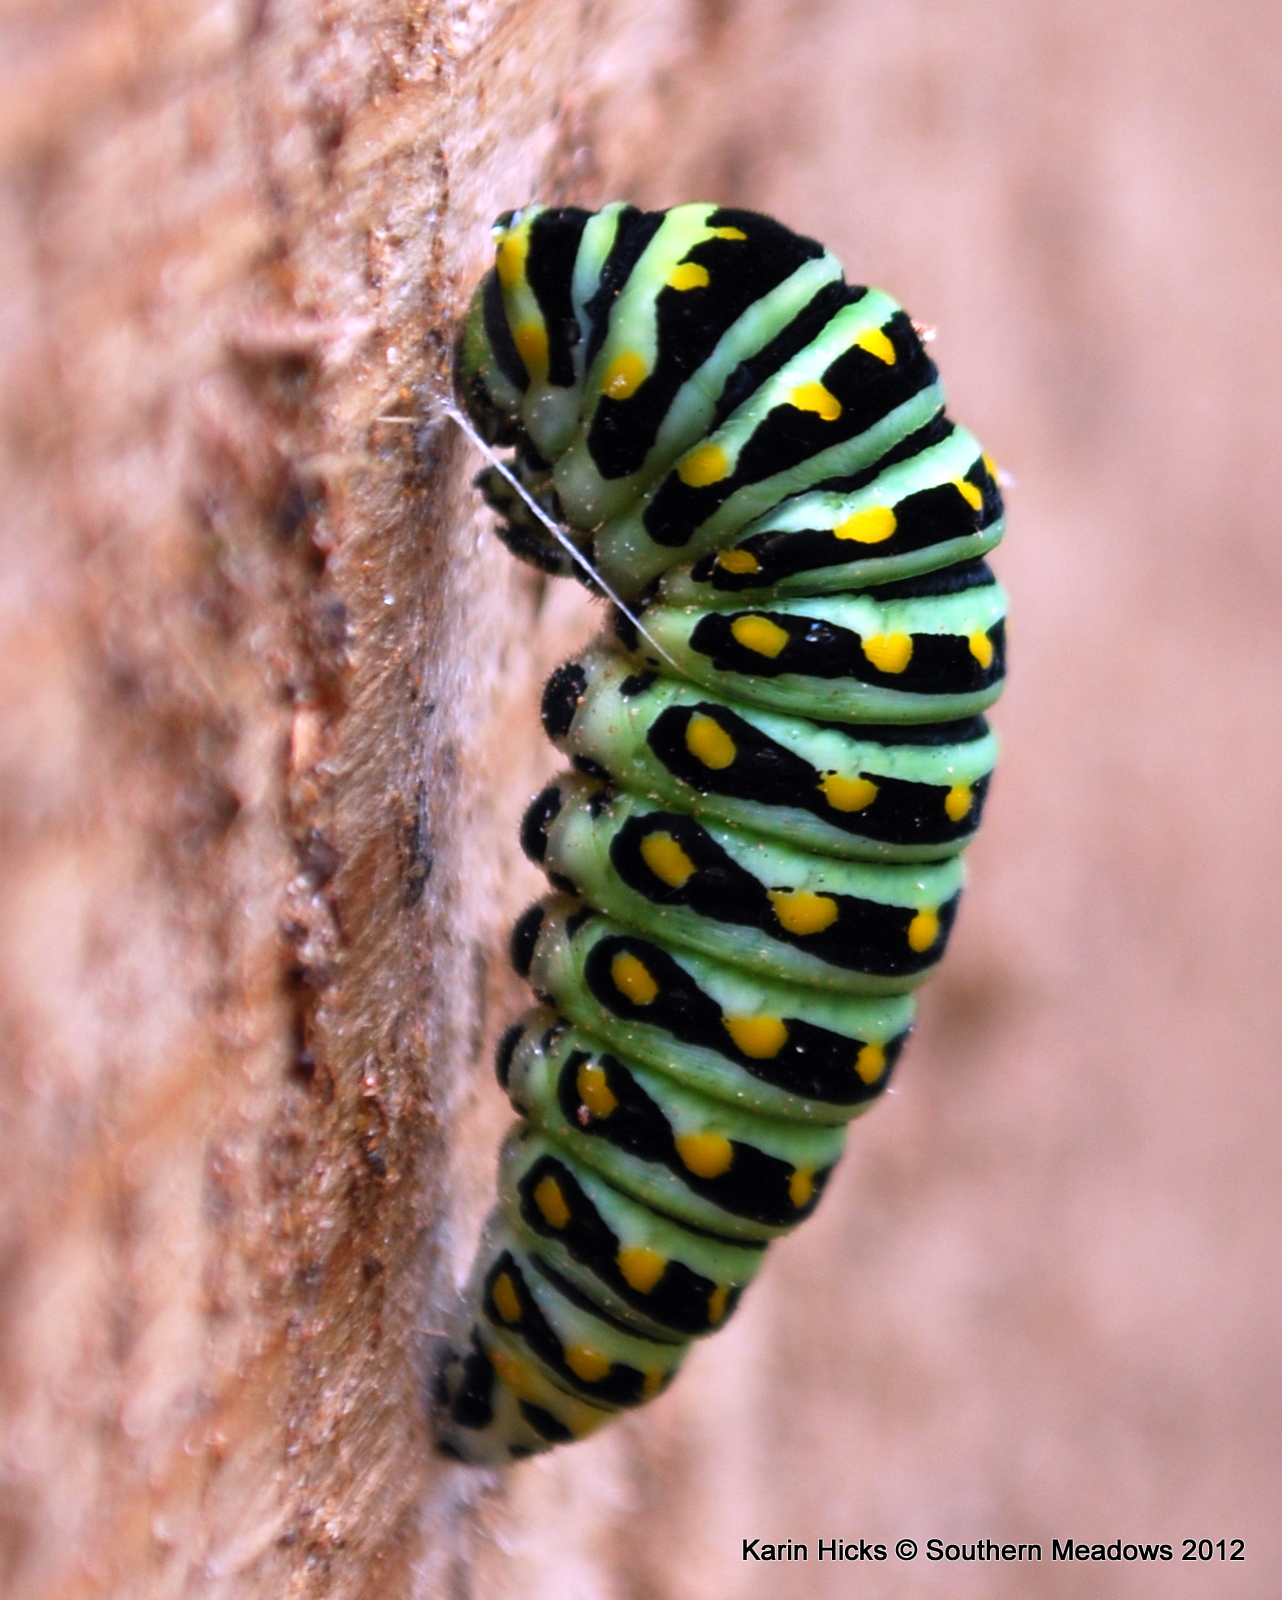 Southern Meadows: A Close Look at the Black Swallowtail ... Black Swallowtail Caterpillar